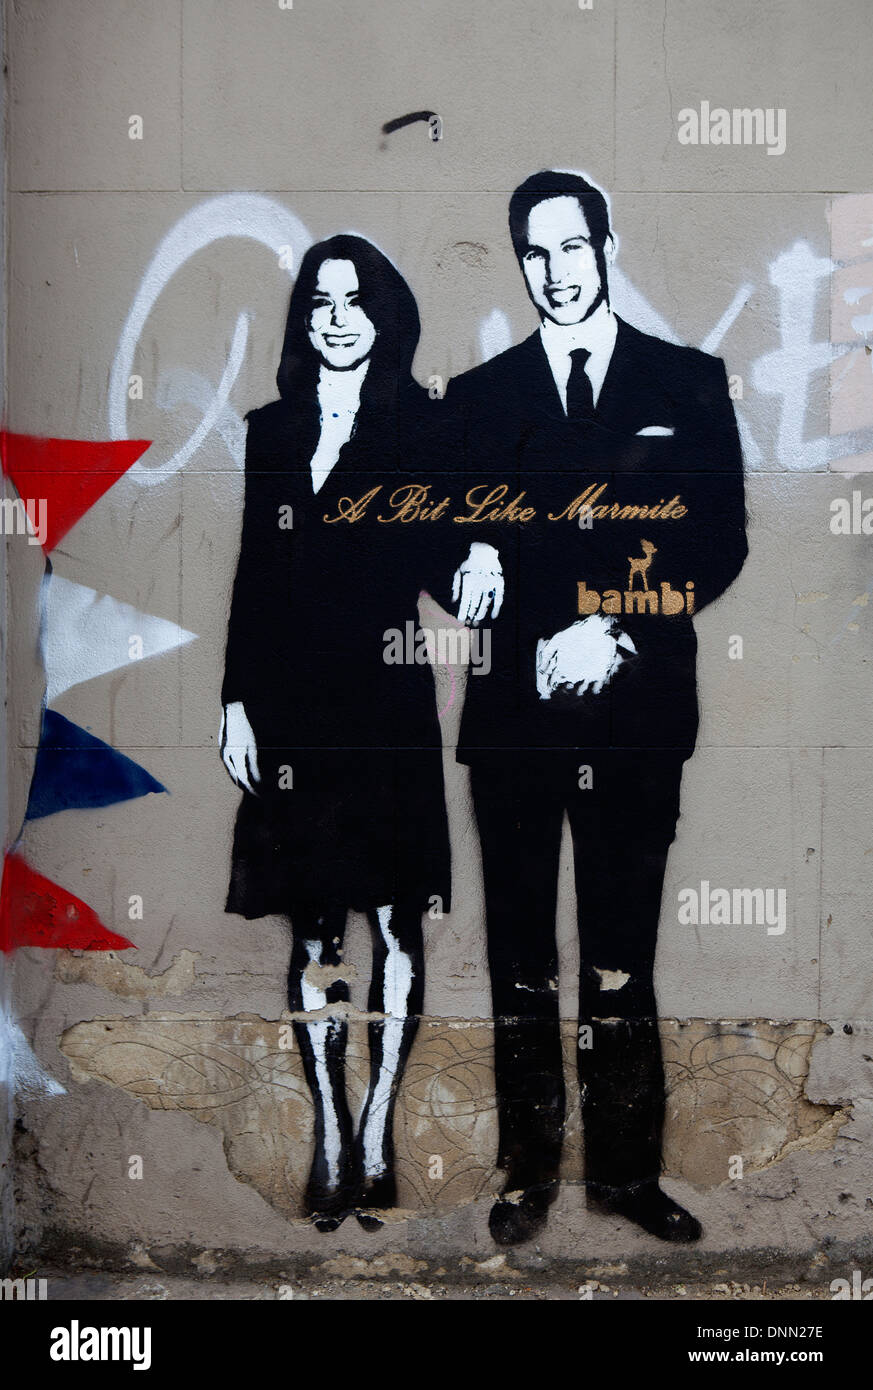 Prince William and Kate Middleton, a bit like marmite, Bambi graffiti, London, UK - Stock Image